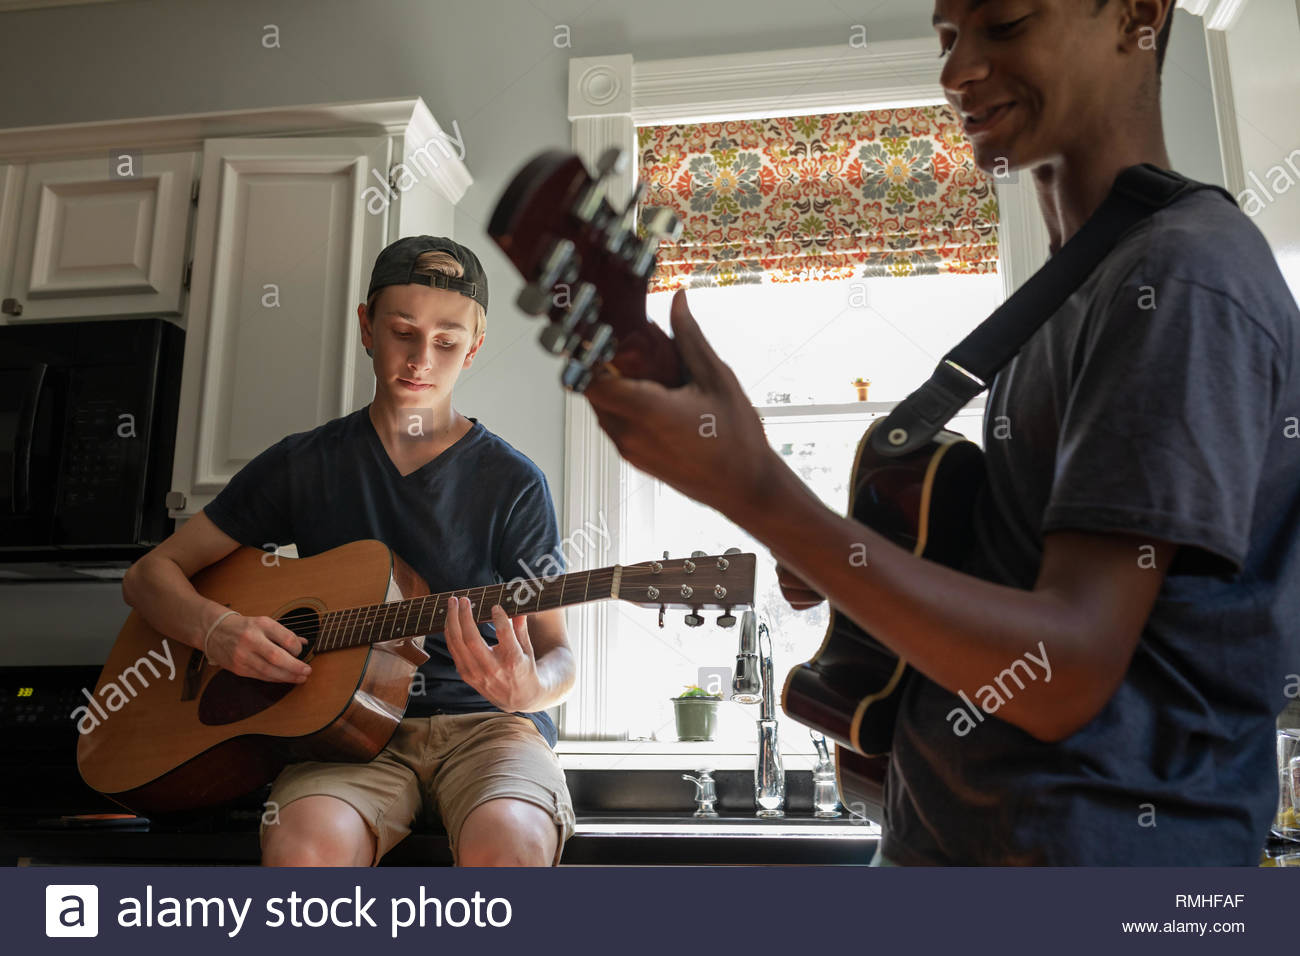 Two teenage boys playing guitars in the ktichen after school - Stock Image